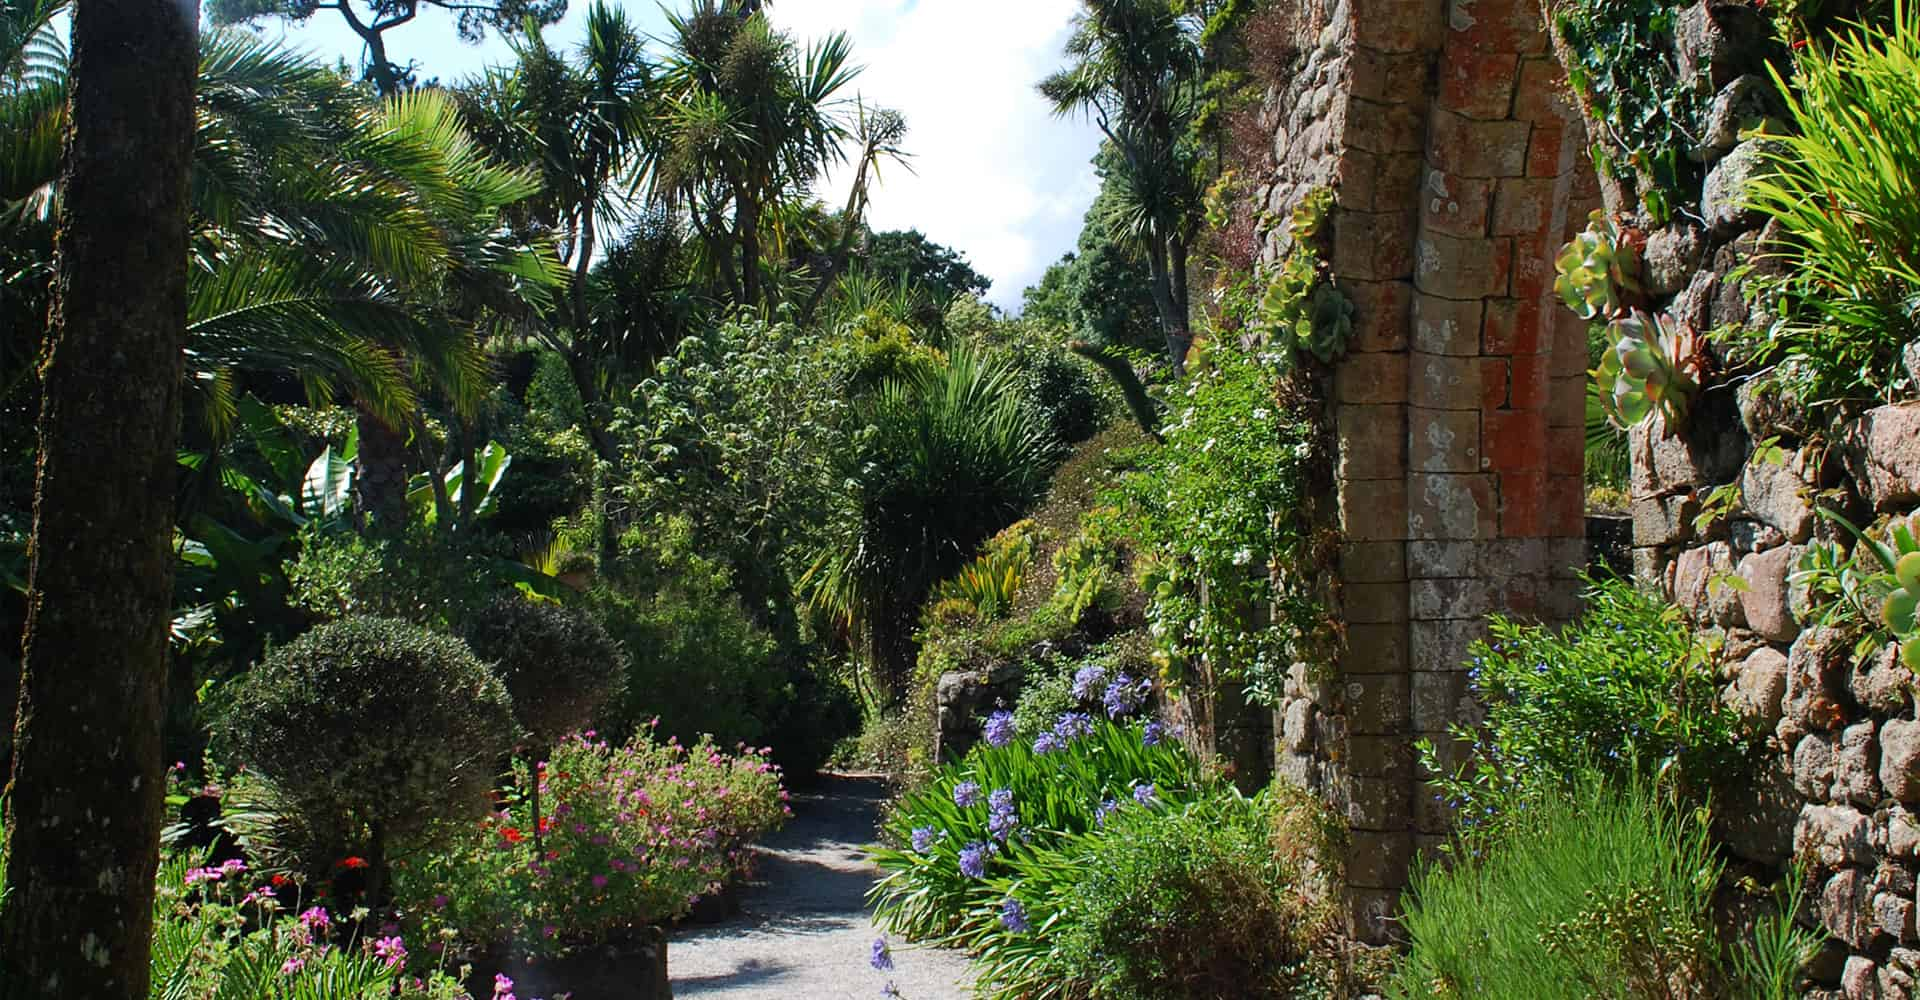 Tresco Abbey Garden - Day Trip Ideas to the Isles of Scilly